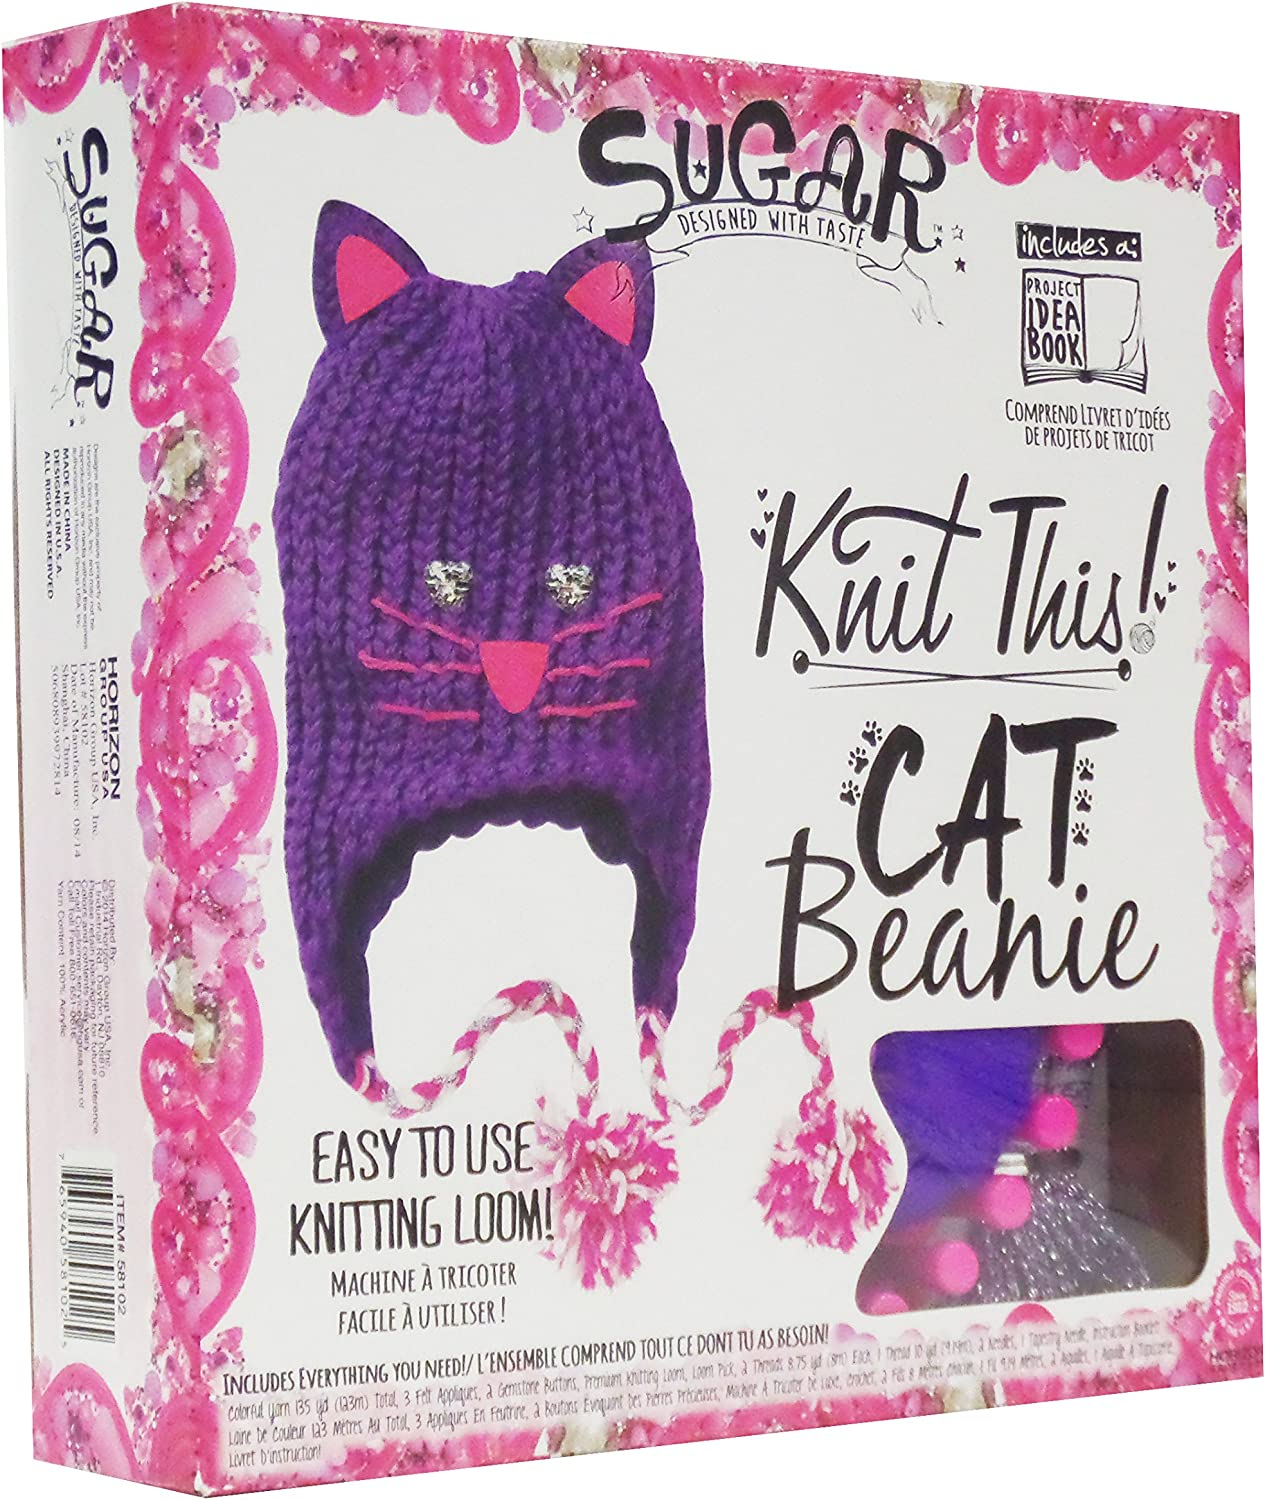 100% precio garantizado Sugar Knit This  Cat Beanie Knitting Kit with Yarn Yarn Yarn and Loom  precios ultra bajos